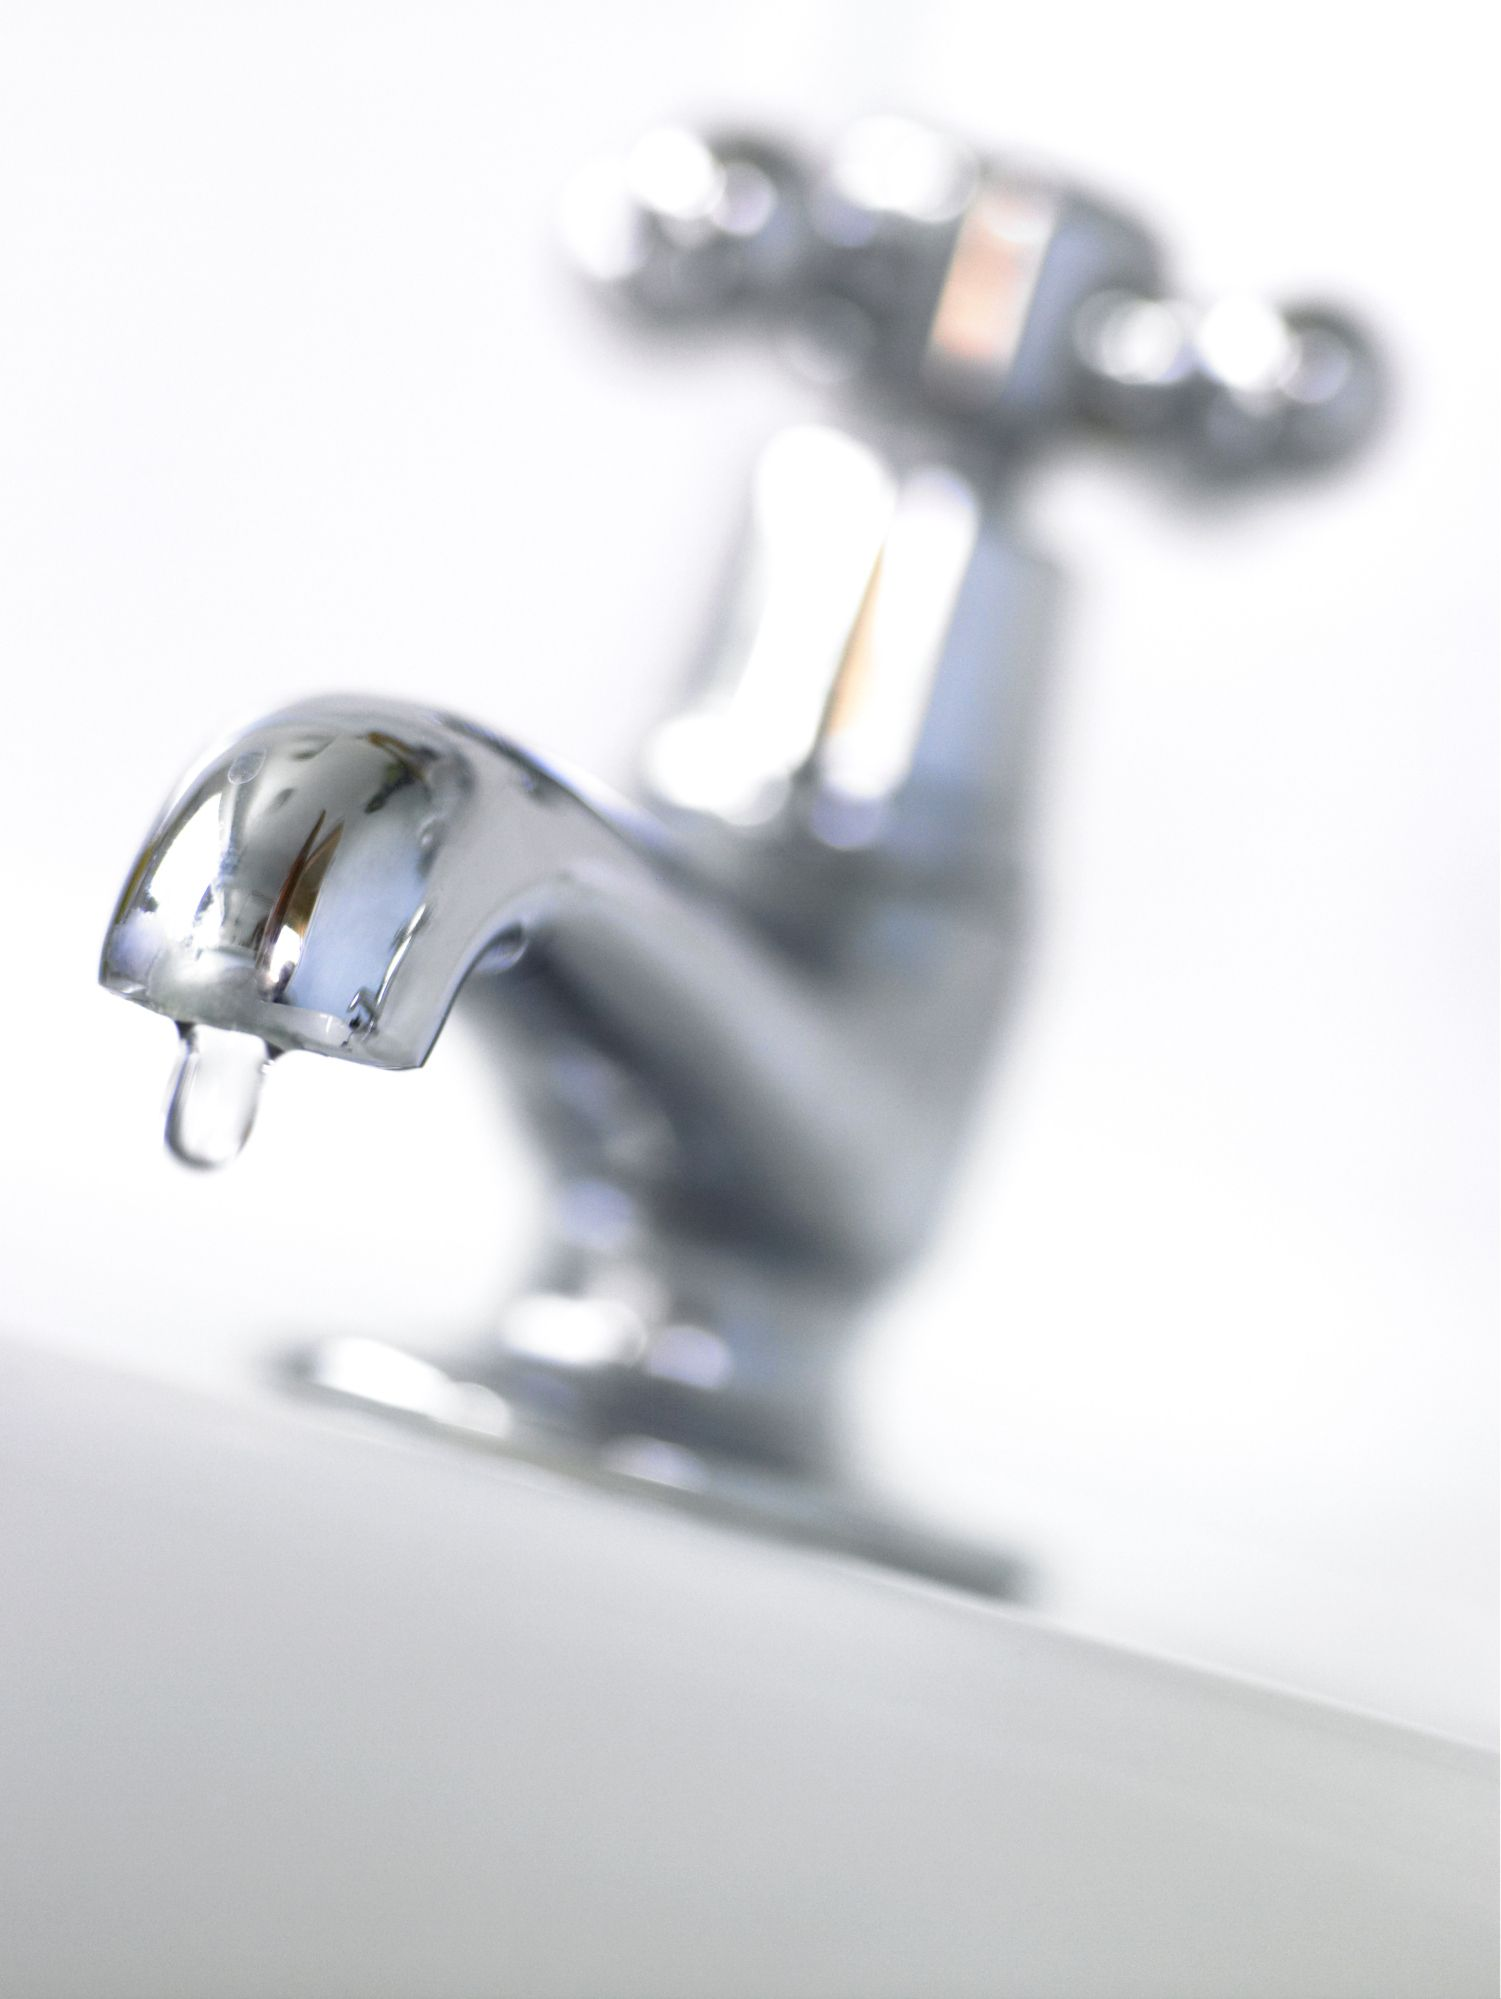 How To Increase Water Pressure In An Upstairs Bathroom Brushed Nickel Faucet Faucet Dripping Faucet